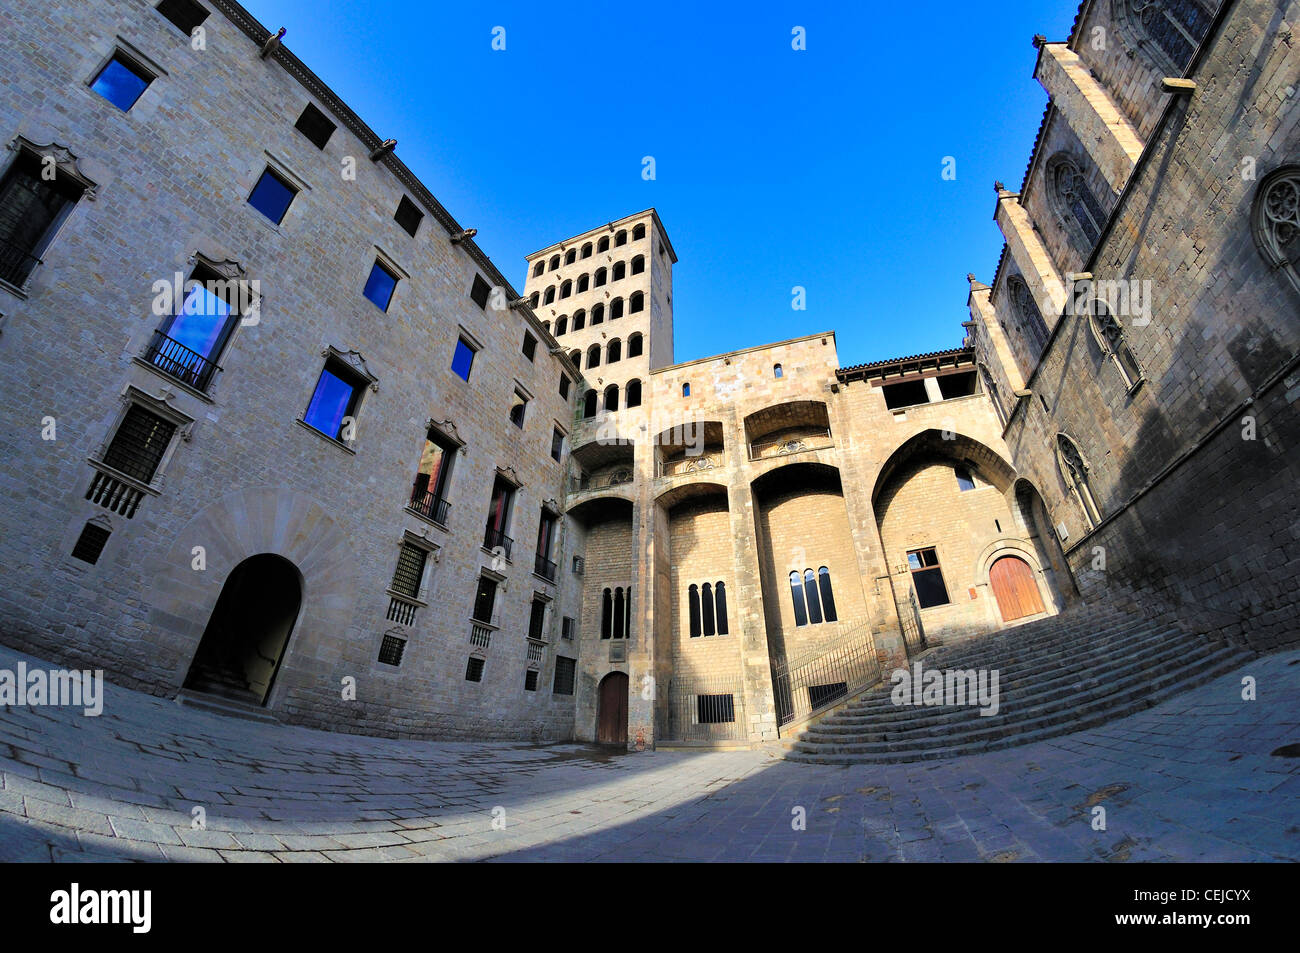 Barcelona, Spain. Placa del Rei in Barri Gotic. Fish-eye view - Stock Image